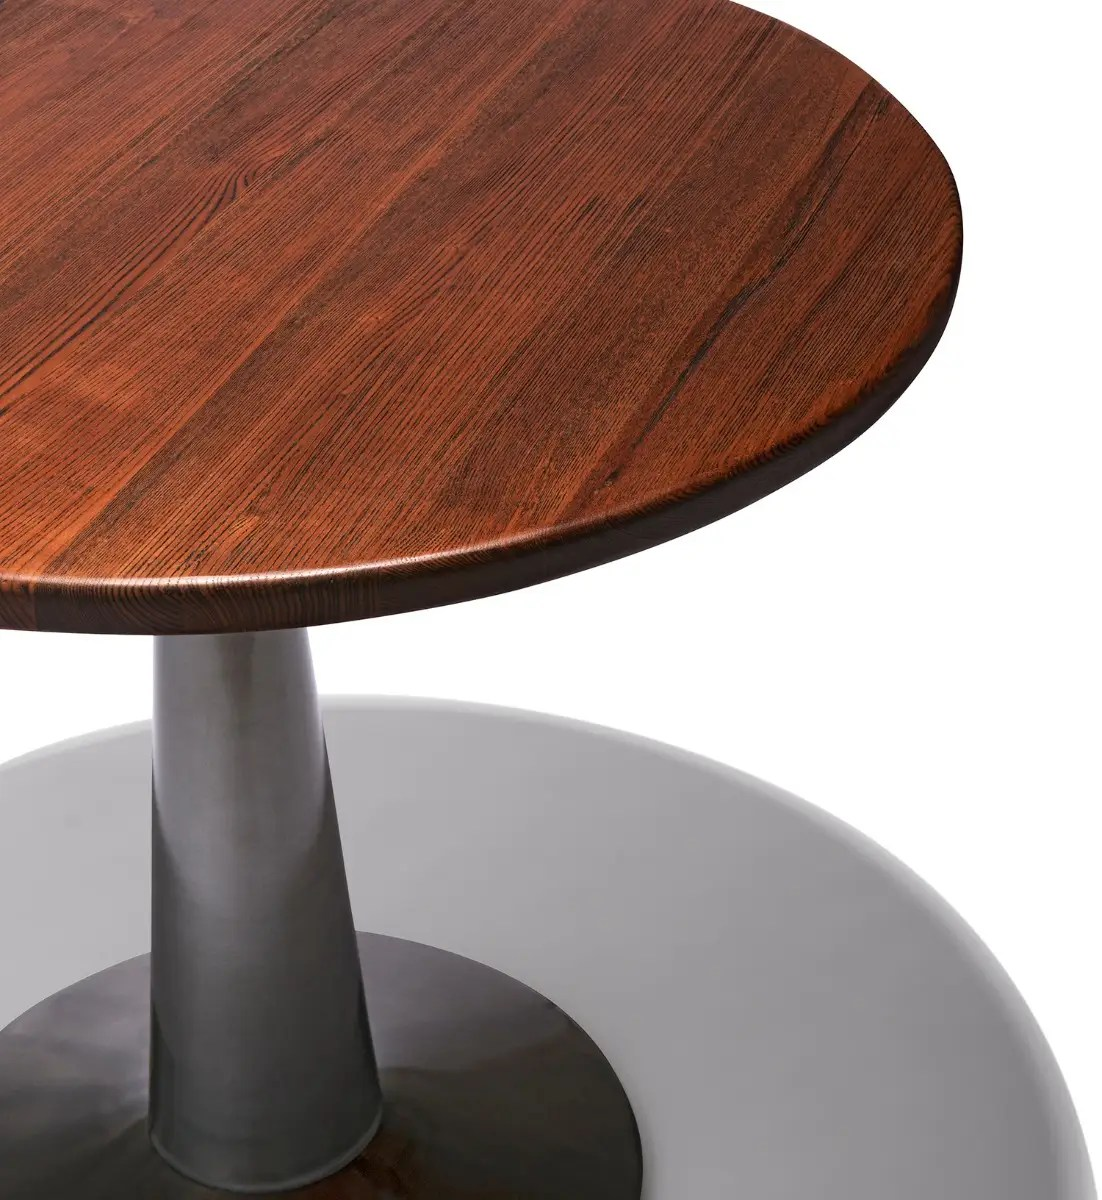 Round High Table And Stools